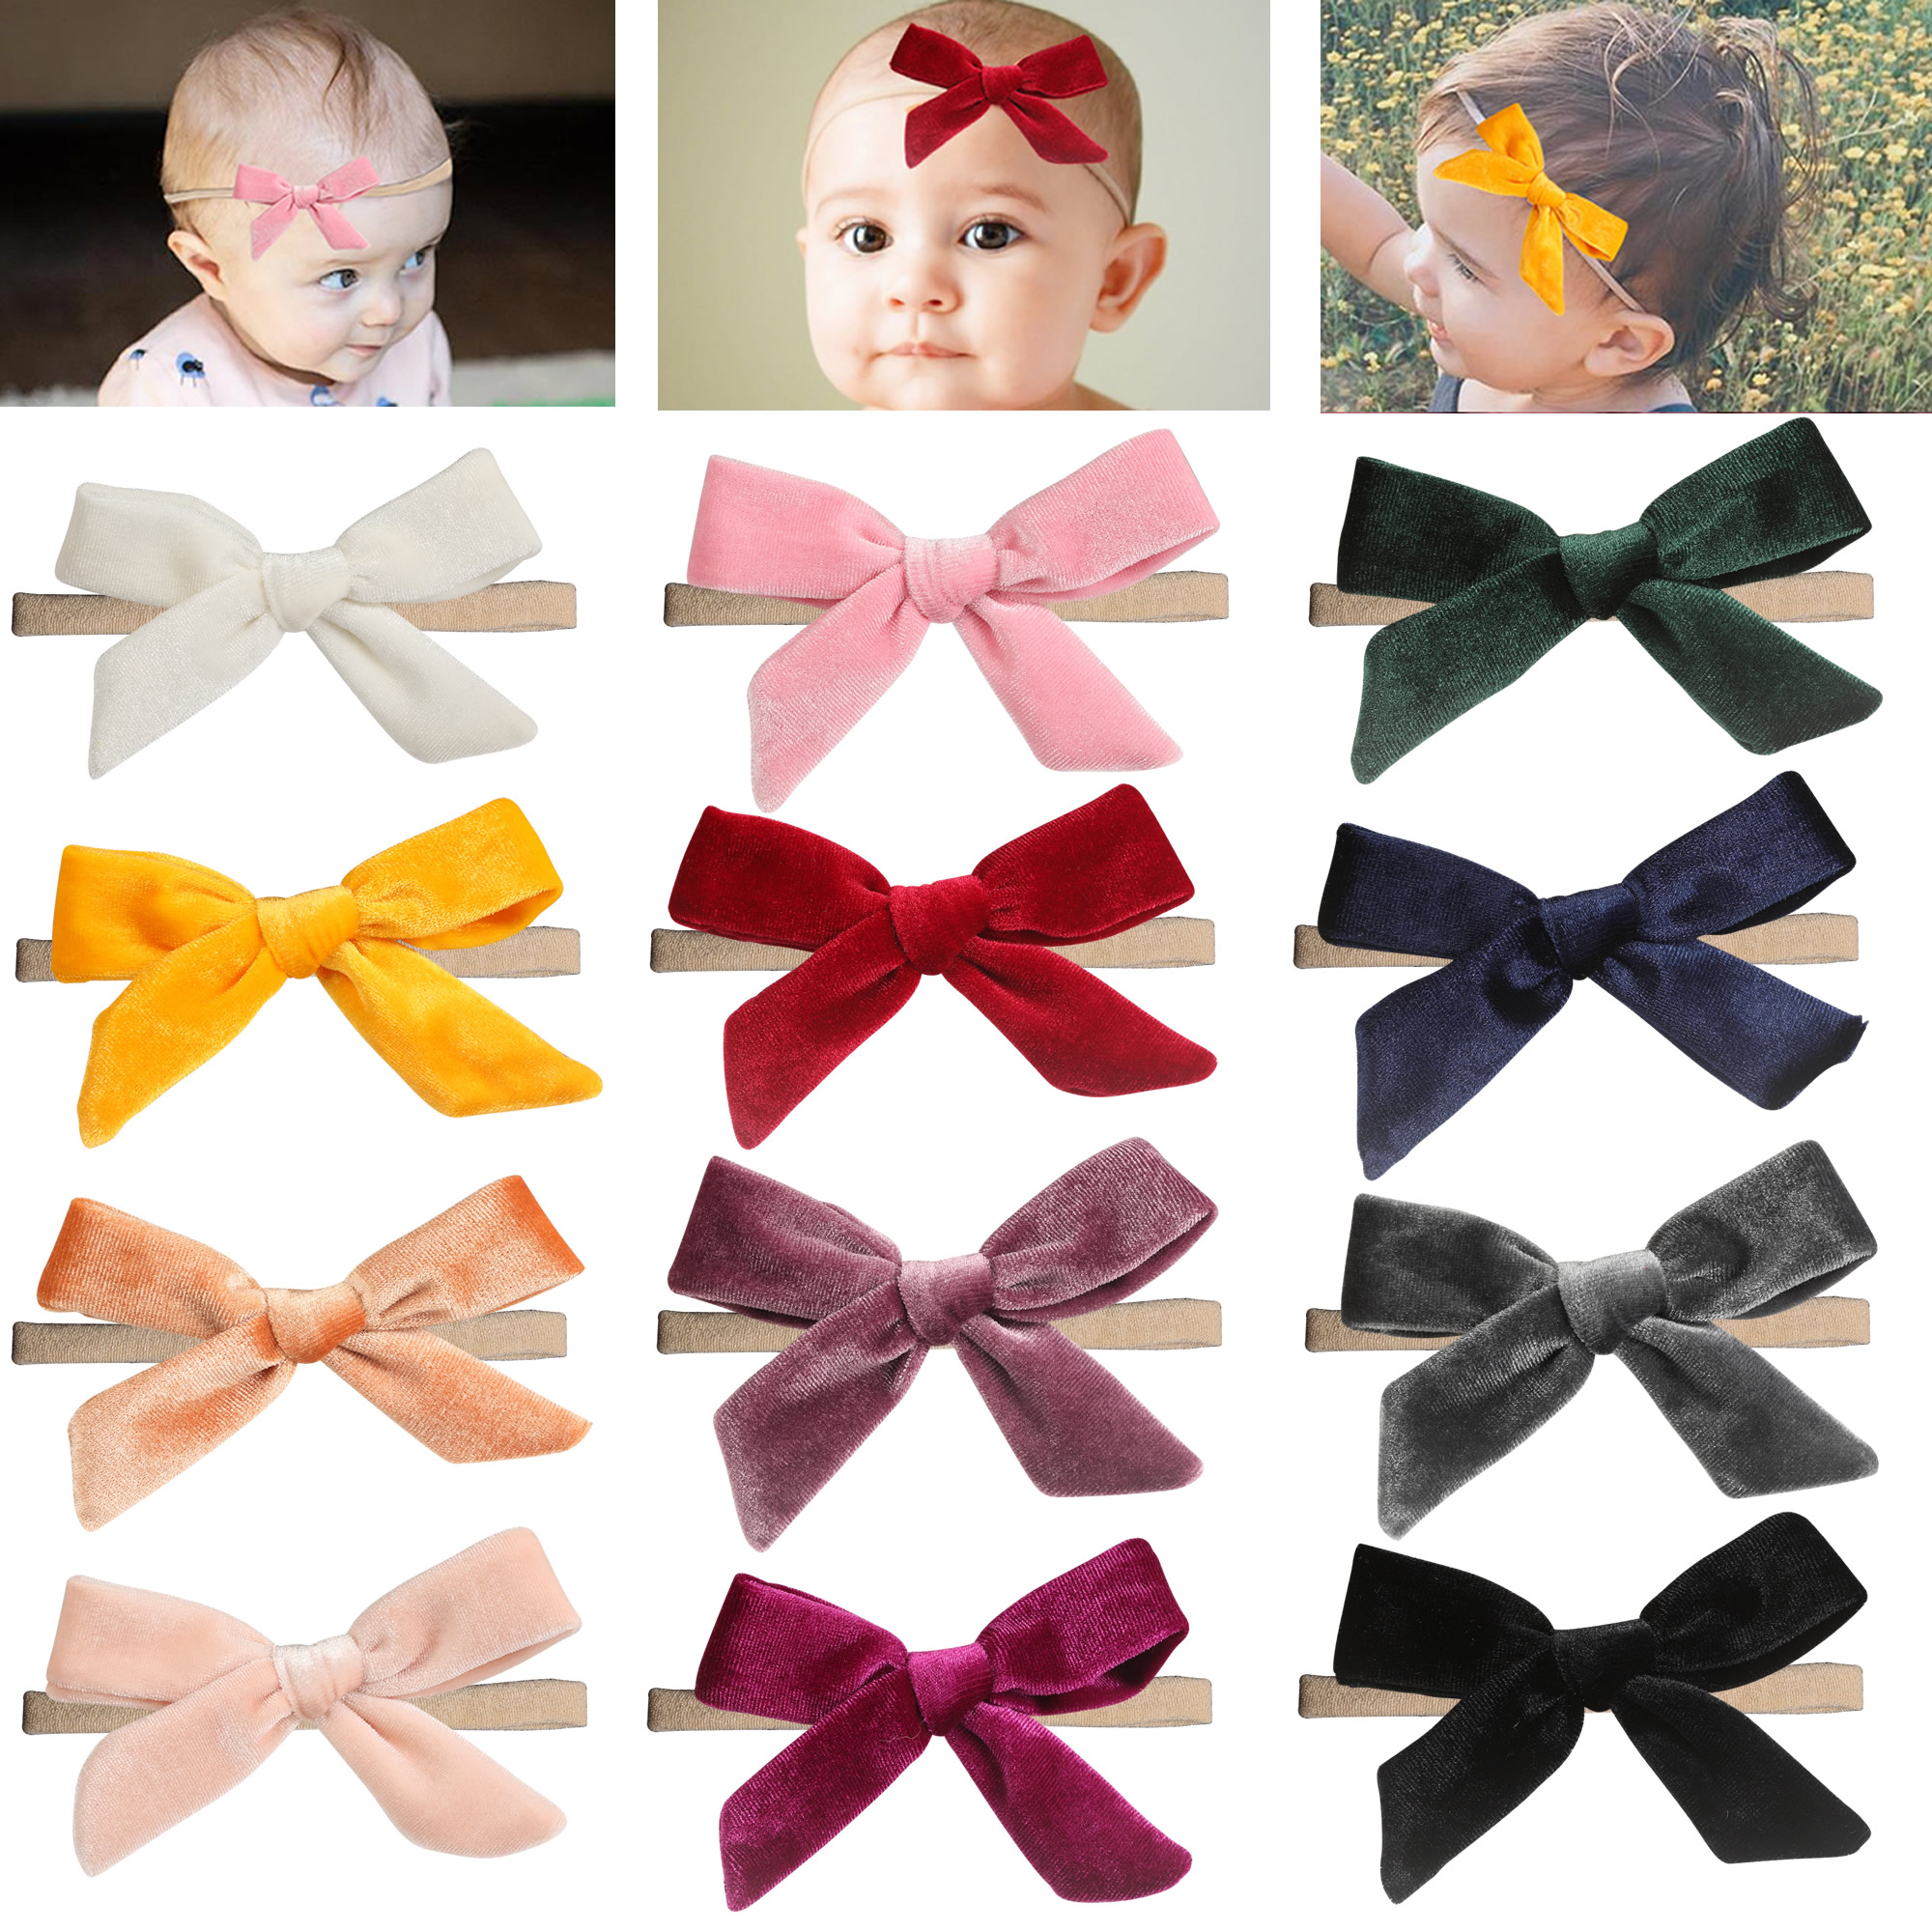 Insowni Ties Hairbands Velvet Hair-Accessories Nylon Toddlers Baby-Girls Solid for Kid